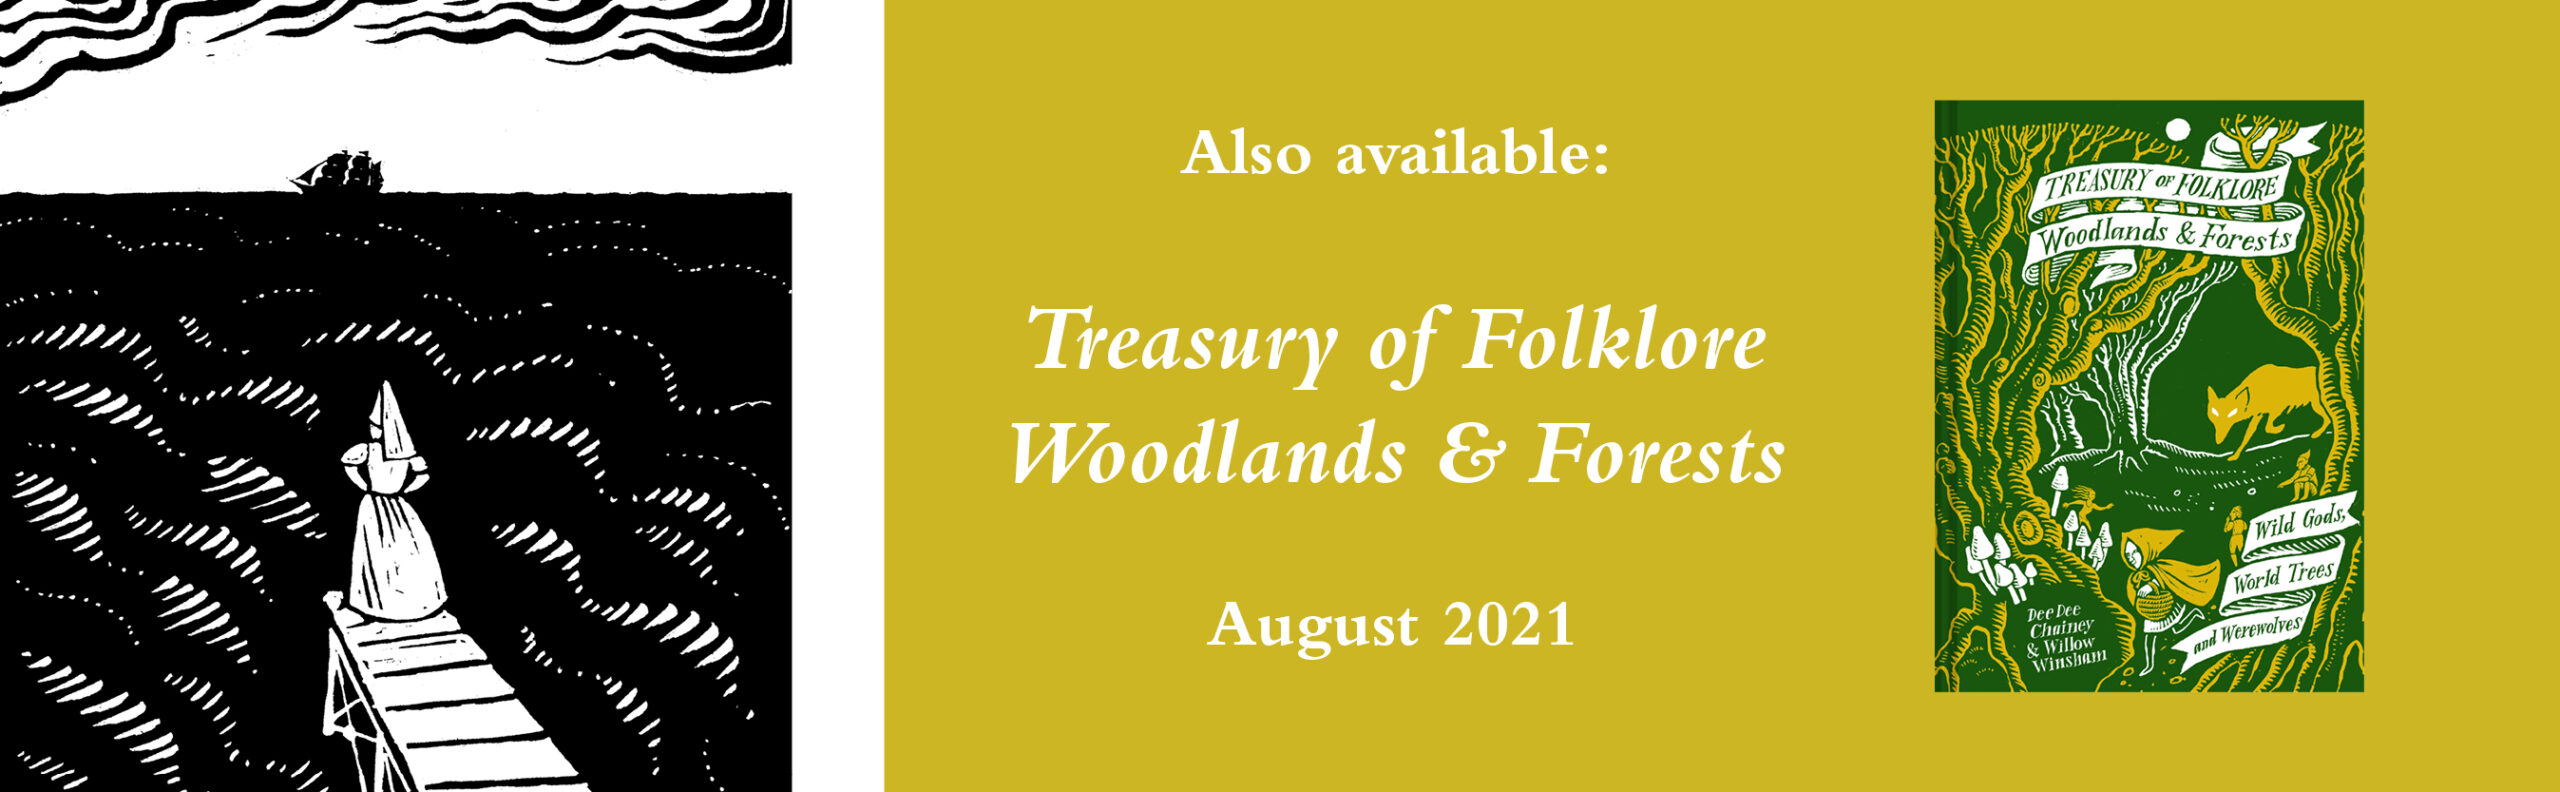 Book banner: Also available, Treasury of Folklore – Woodlands and Forests.